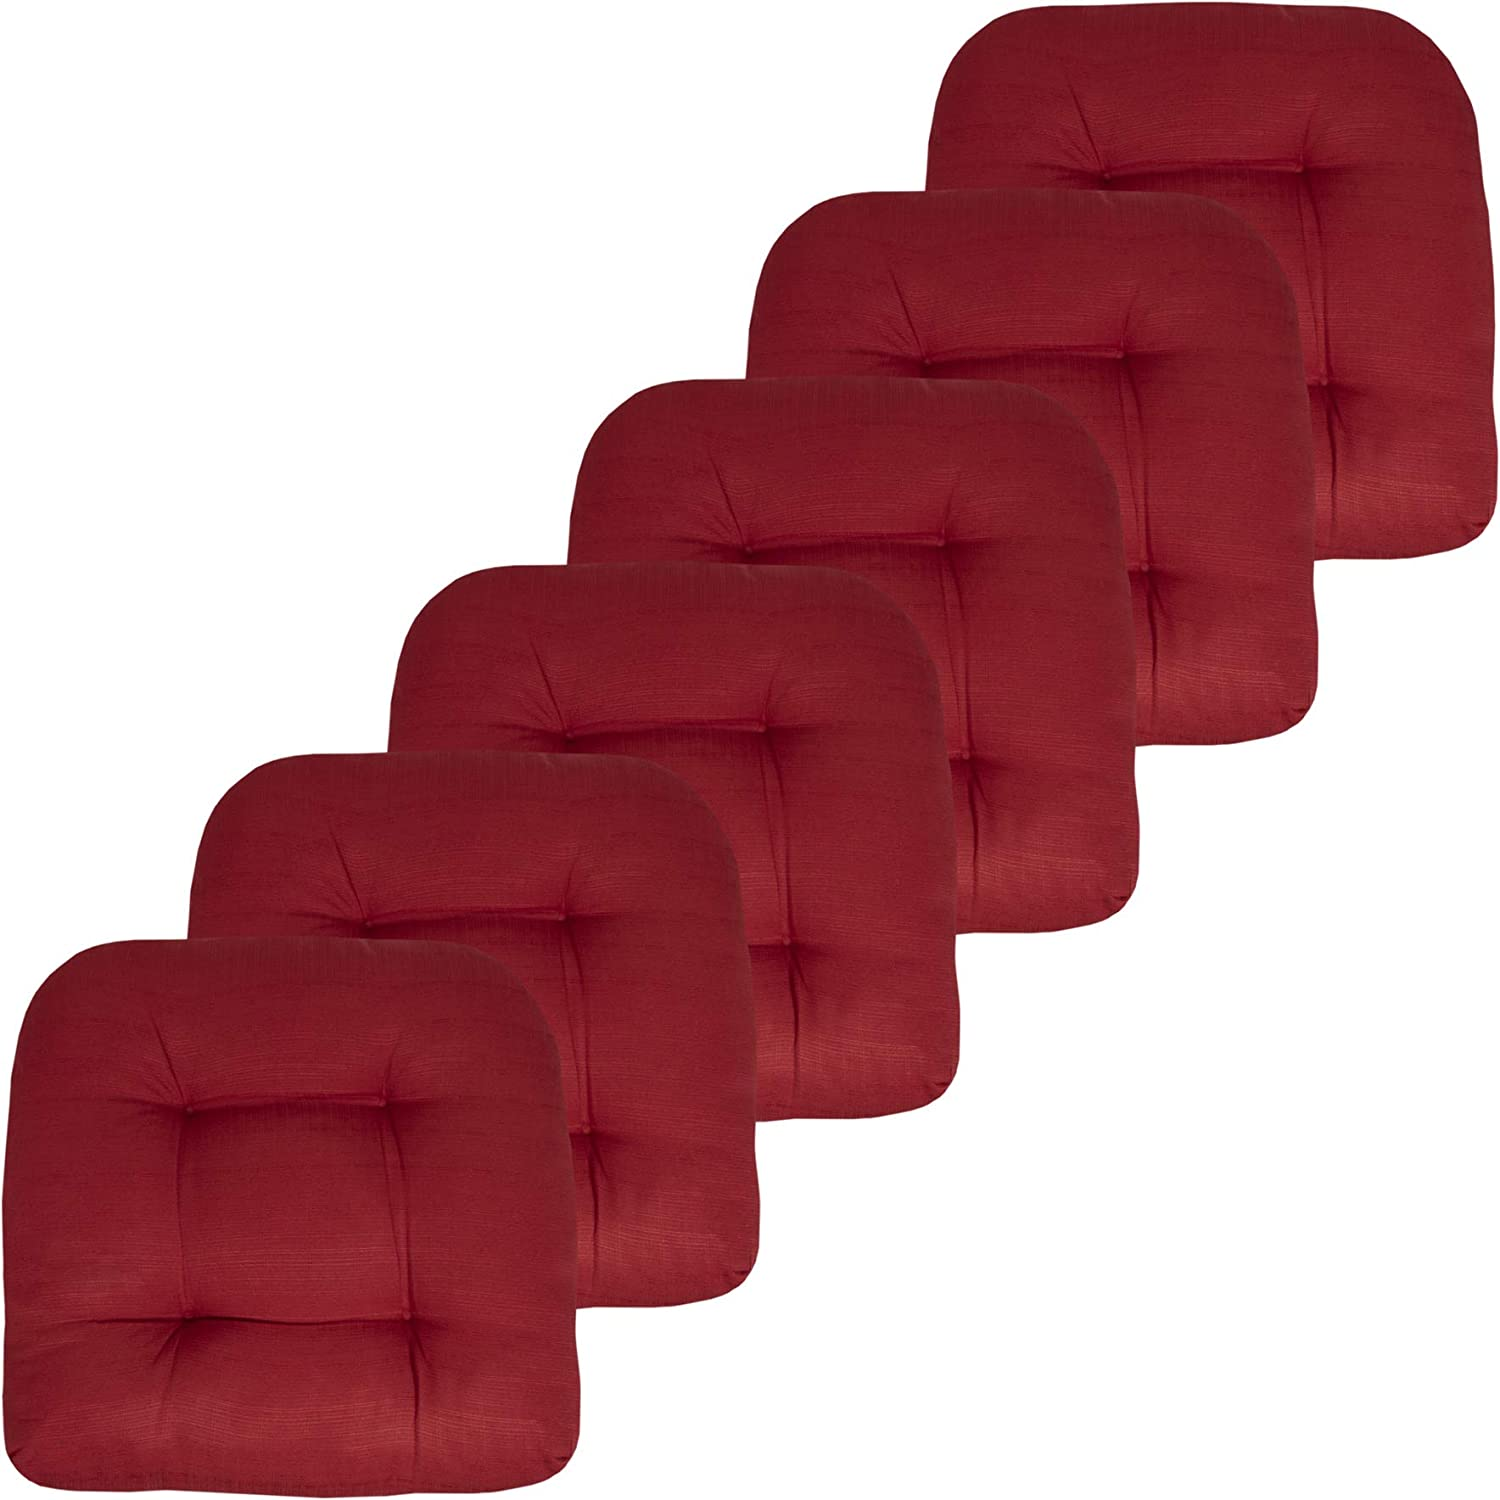 """Sweet Home Collection Patio Cushions Outdoor Chair Pads Premium Comfortable Thick Fiber Fill Tufted 19"""" x 19"""" Seat Cover, 6 Pack, Red"""